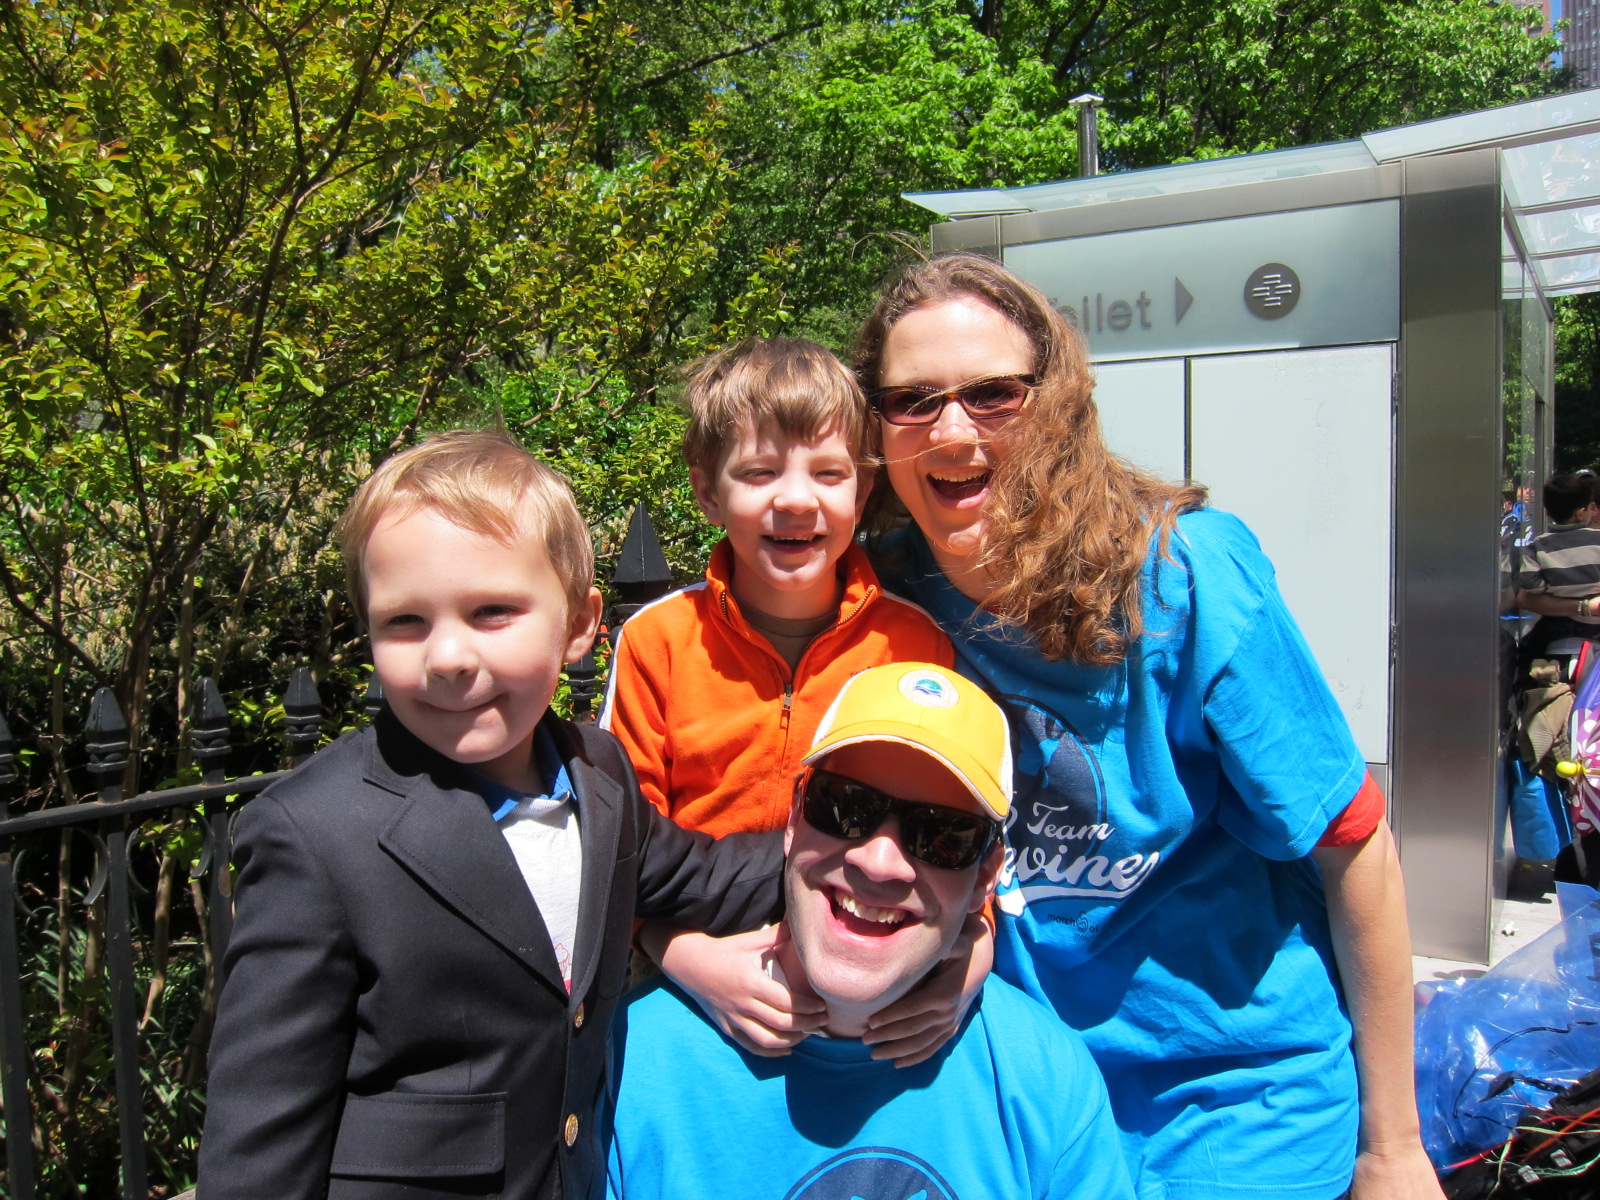 weilgongaware-family-at-the-2012-march-for-babies-walk-finn-a-true-miracle-was-in-the-nicu-with-isabelle_8540259976_o.jpg